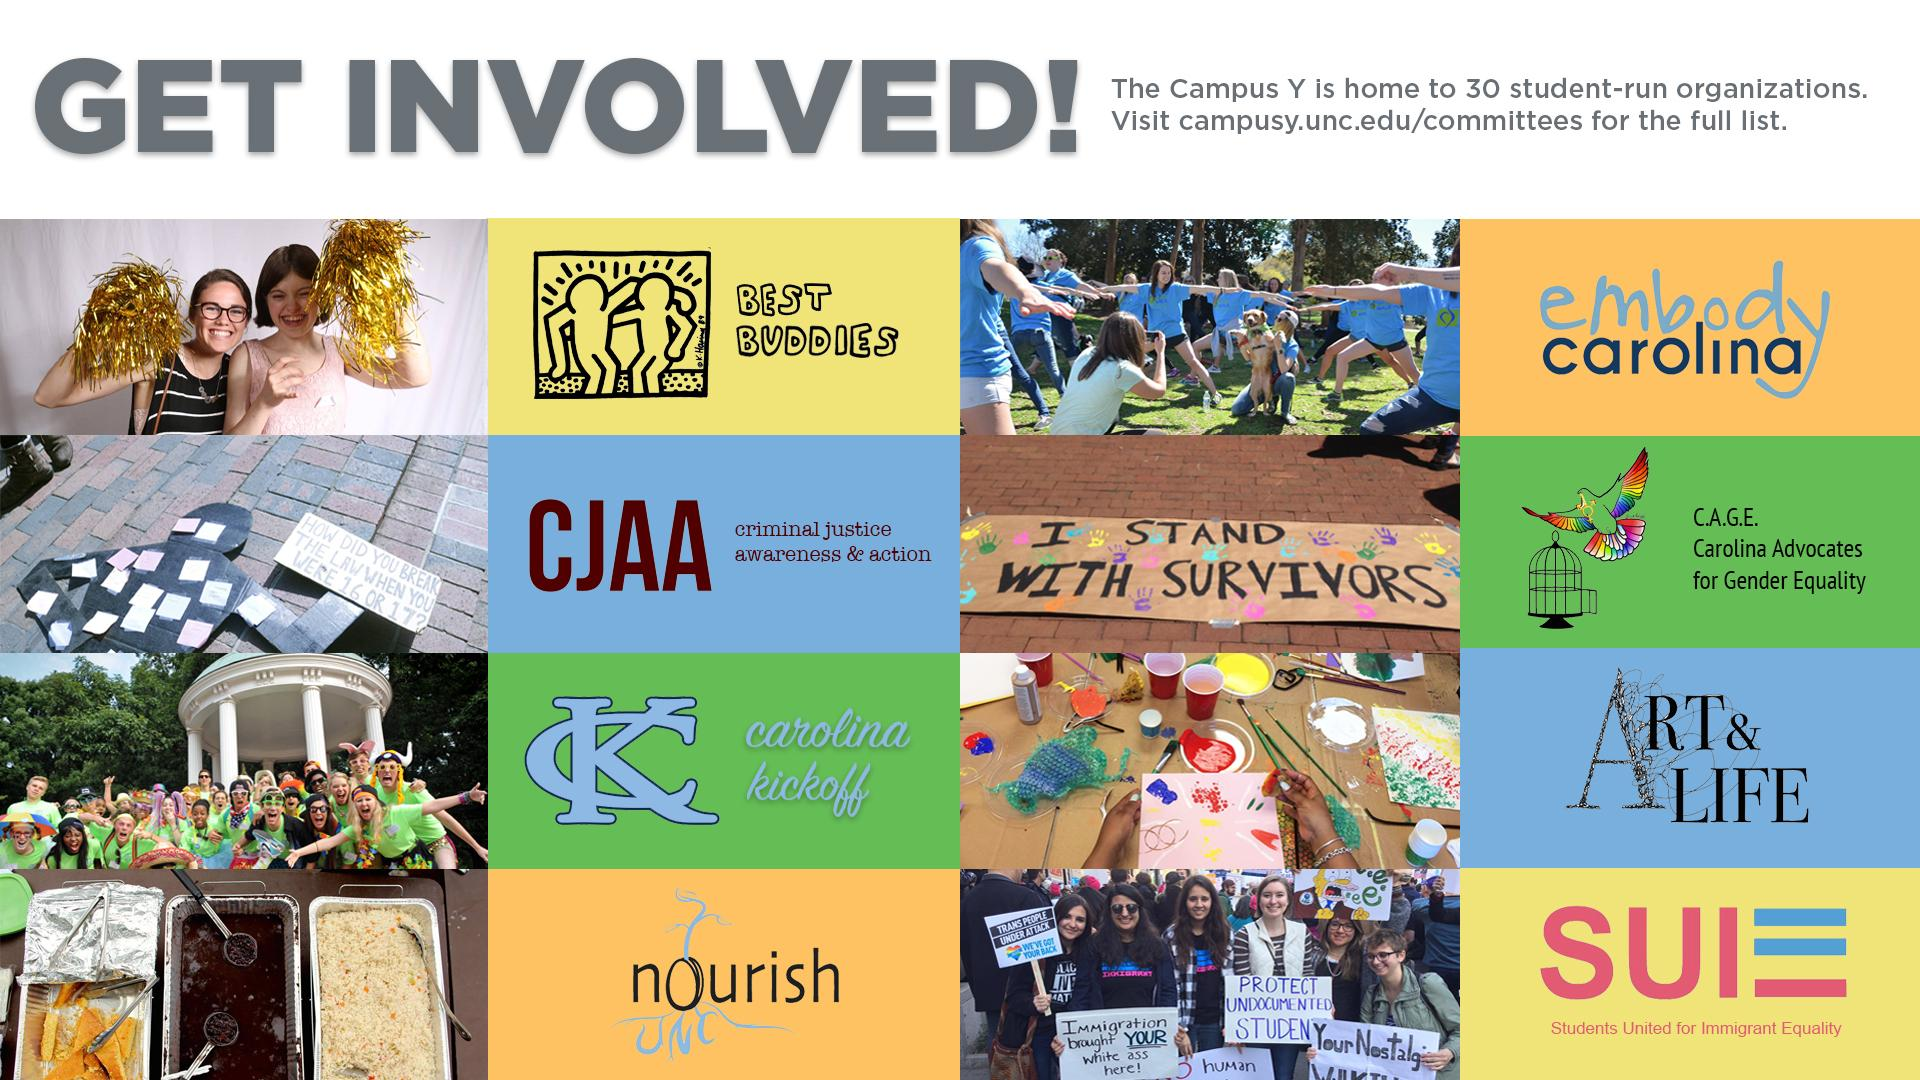 Get involved! The Campus Y is home to 30 student-run organizations. Visit campusy.unc.edu/committees for the full list.